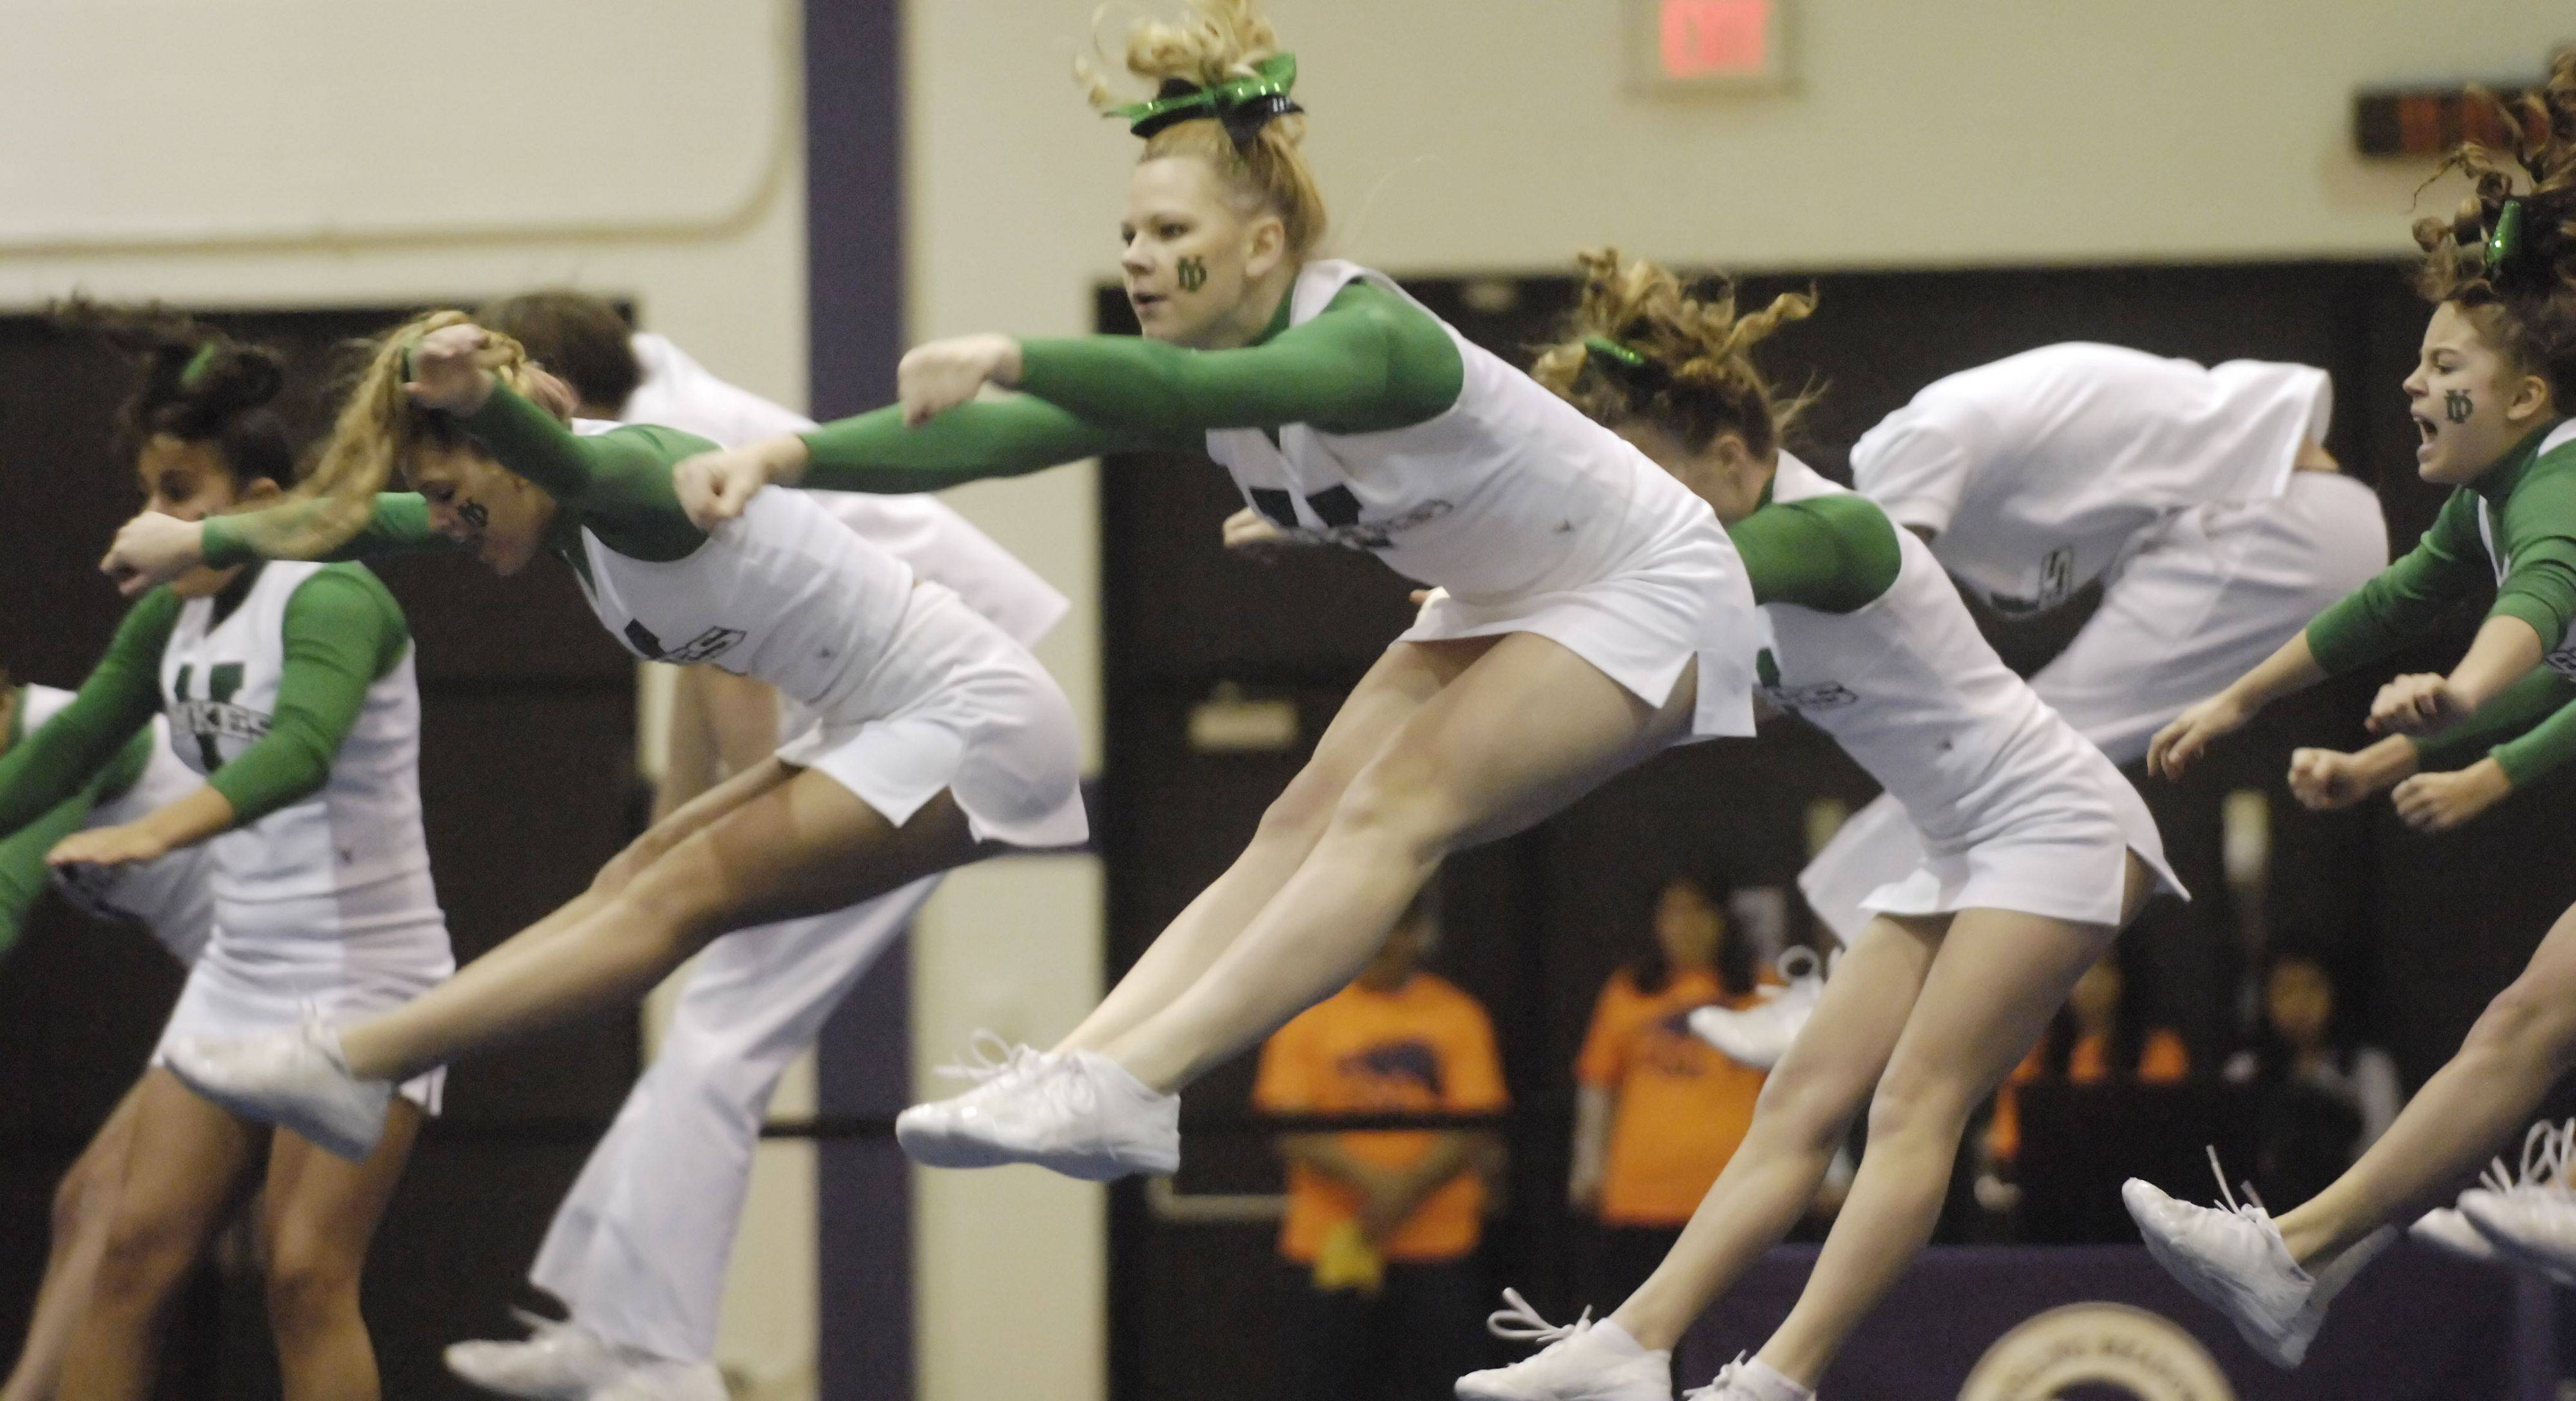 York High School competes during Saturday's cheerleading sectional hosted by Rolling Meadows High School.